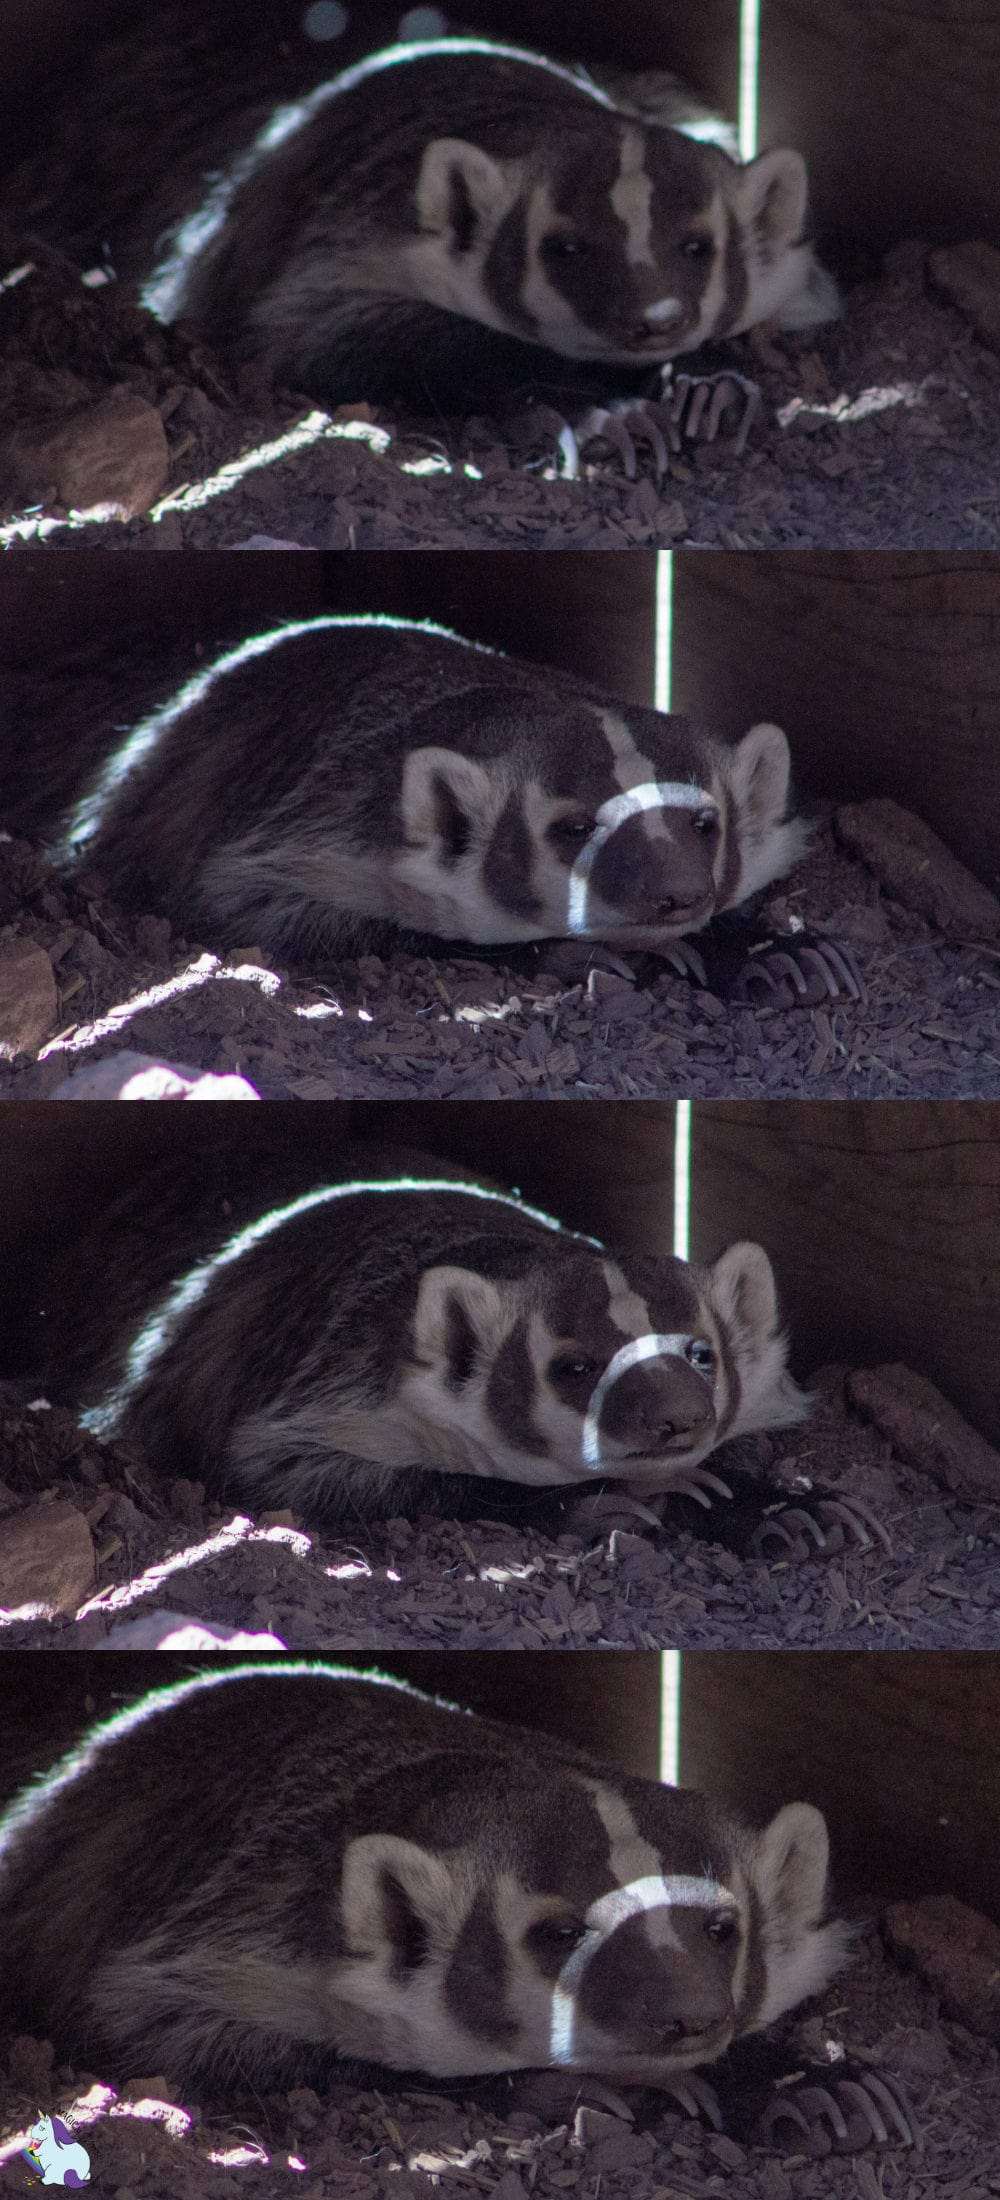 Badger needs coffee and darkness. Bearizona has so many funny creatures!